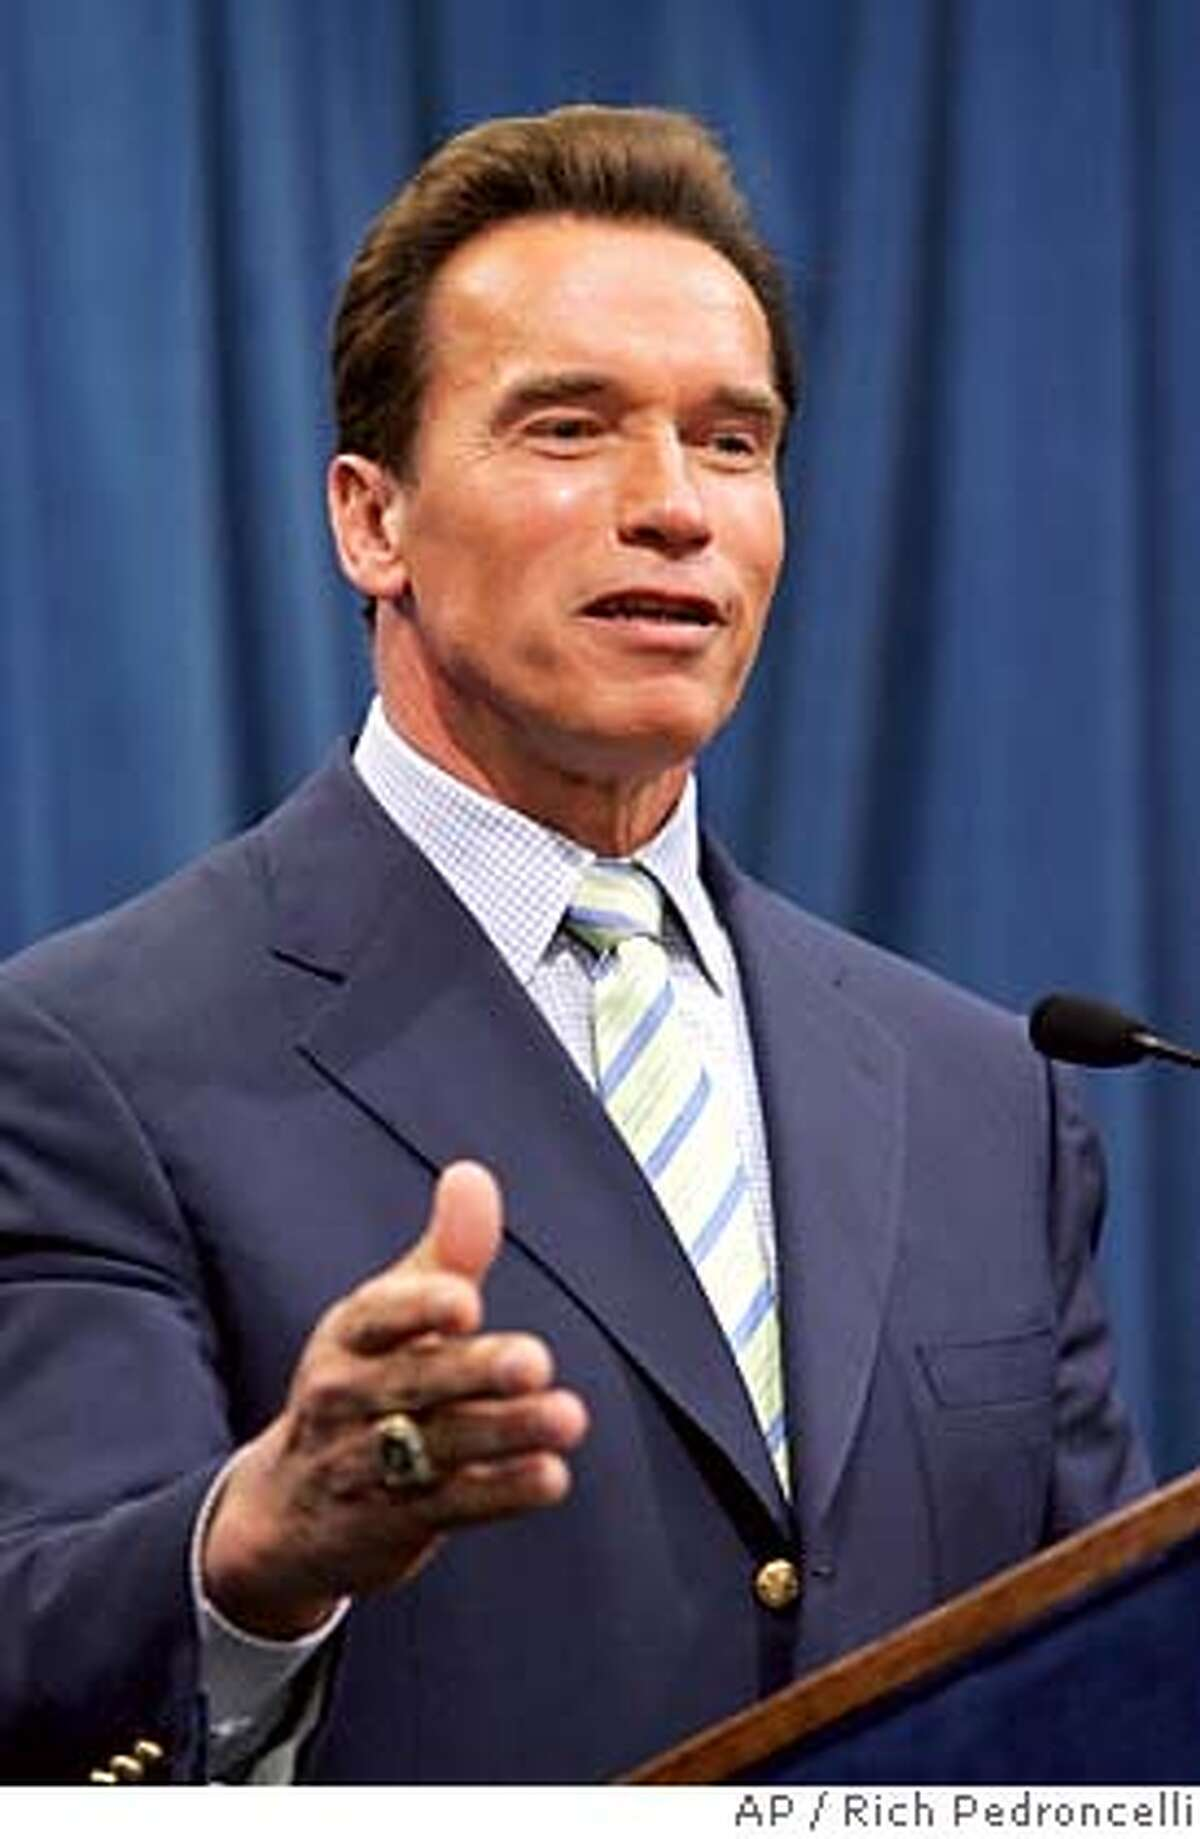 California Gov. Arnold Schwarzenegger answers a question during his first news conference since the defeat of his ballot intiatives in Tuesday's special election, at the Capiitol in Sacramento, Calif., Thursday, Nov. 10, 2005. Schwarzenegger took responsibility for the failure of his initiatives and said he learned that he needs more patience in seeking government reform. California voters rejected each of the initiatives Schwarzenegger was pushing on the special election ballot. (AP Photo/Rich Pedroncelli) Ran on: 11-13-2005 The governors trip is seen as an attempt to move forward politically after special election defeats. Ran on: 11-13-2005 The governors trip is seen as an attempt to move forward politically after special election defeats. Ran on: 11-13-2005 The governors trip is seen as an attempt to move forward politically after special election defeats.